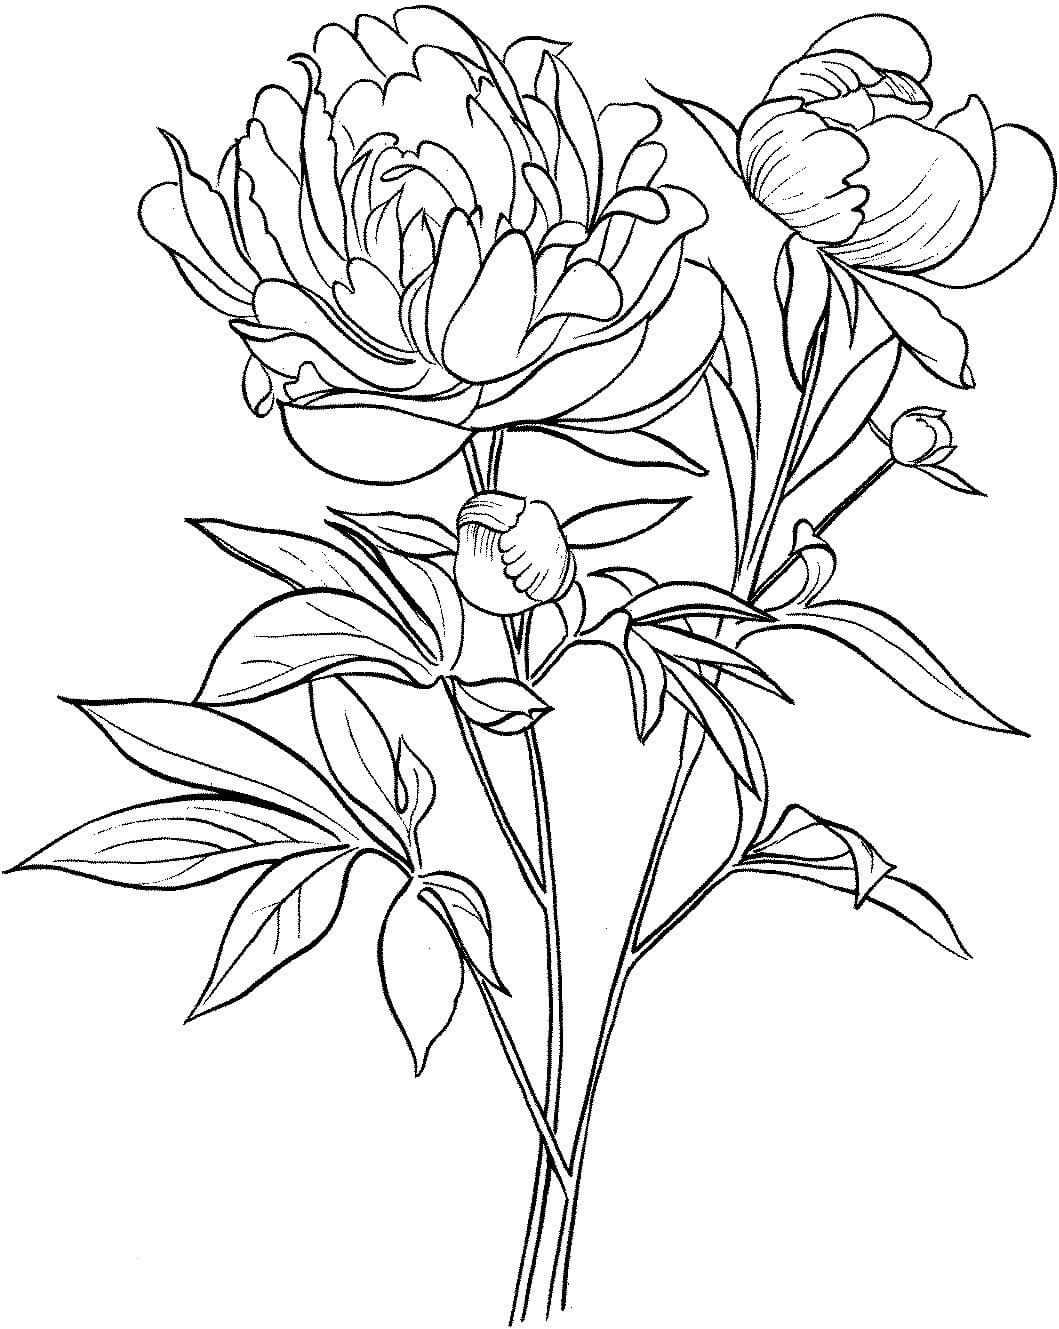 Poppy Flower Scientific Drawing At Getdrawings Free For